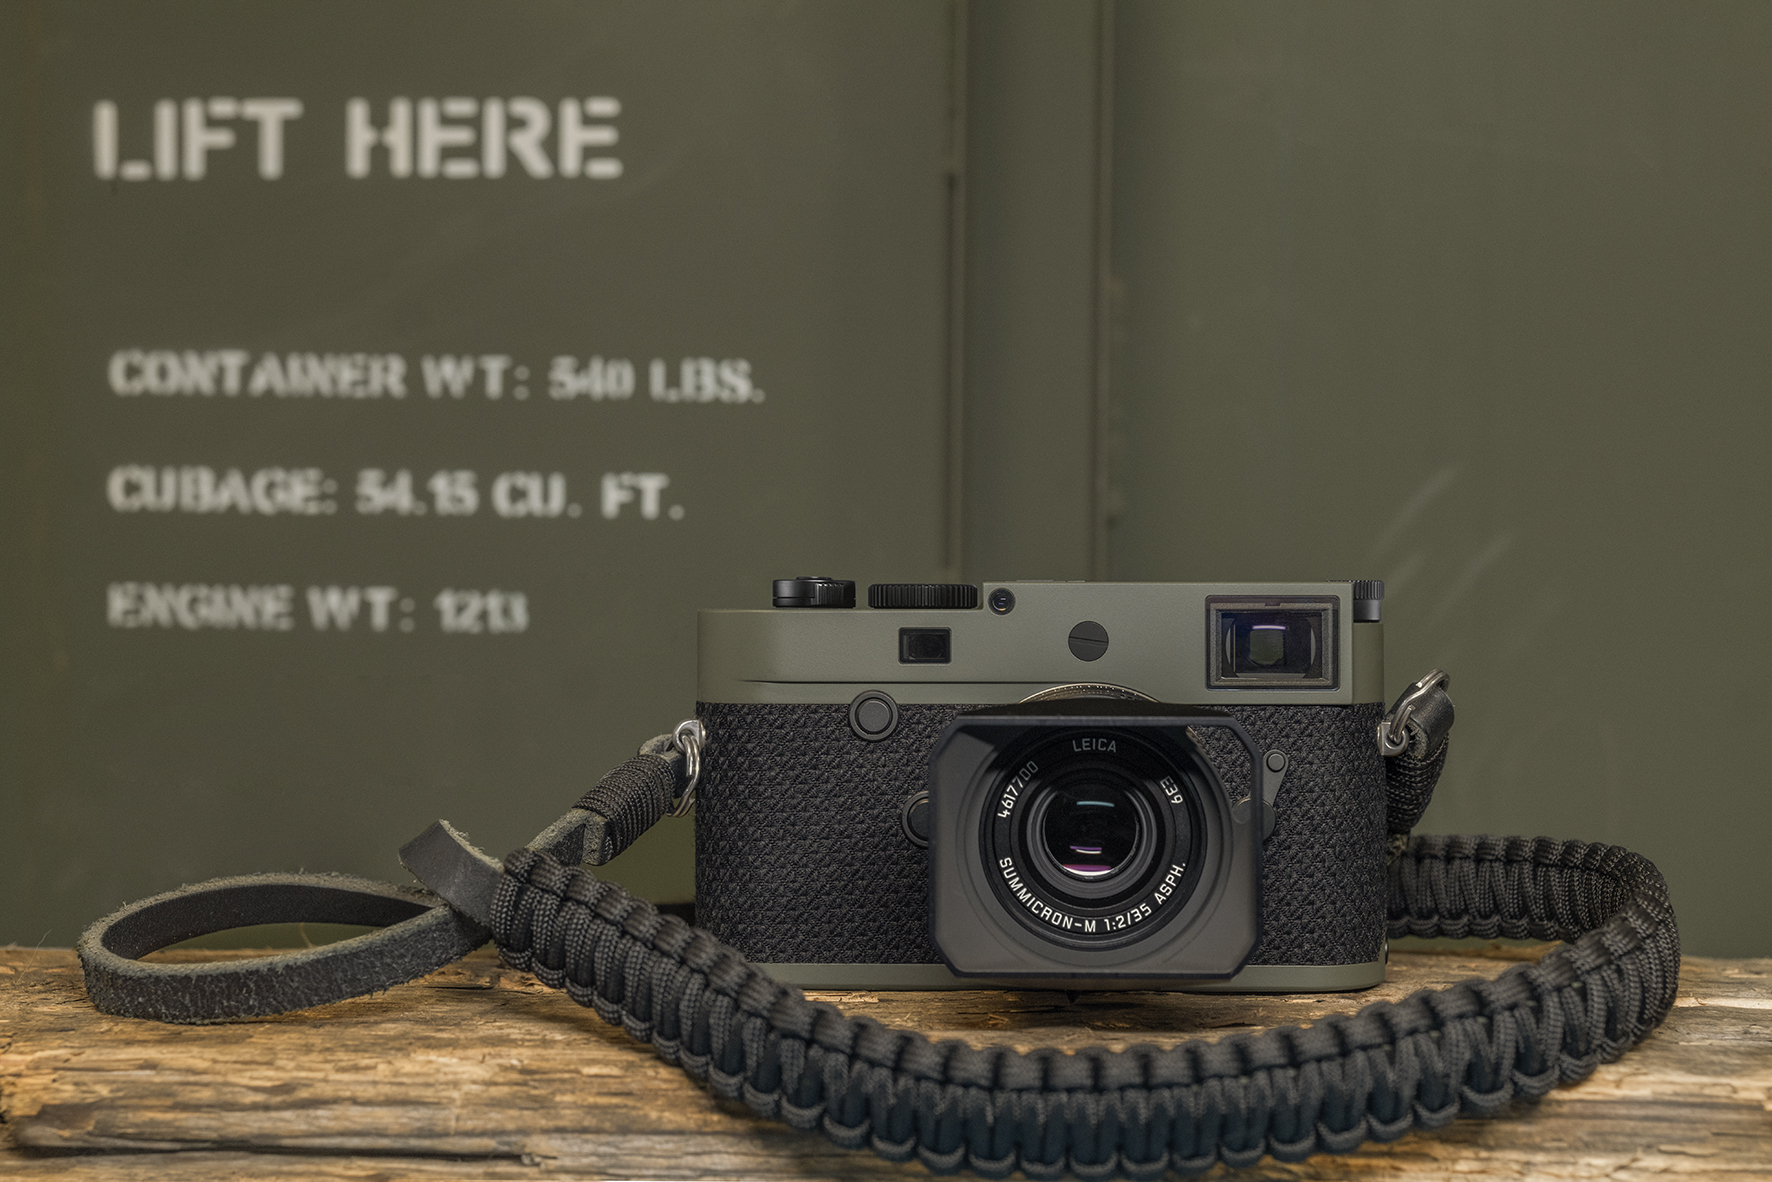 Leica launches Kevlar-covered 'Reporter' version of its M10-P camera